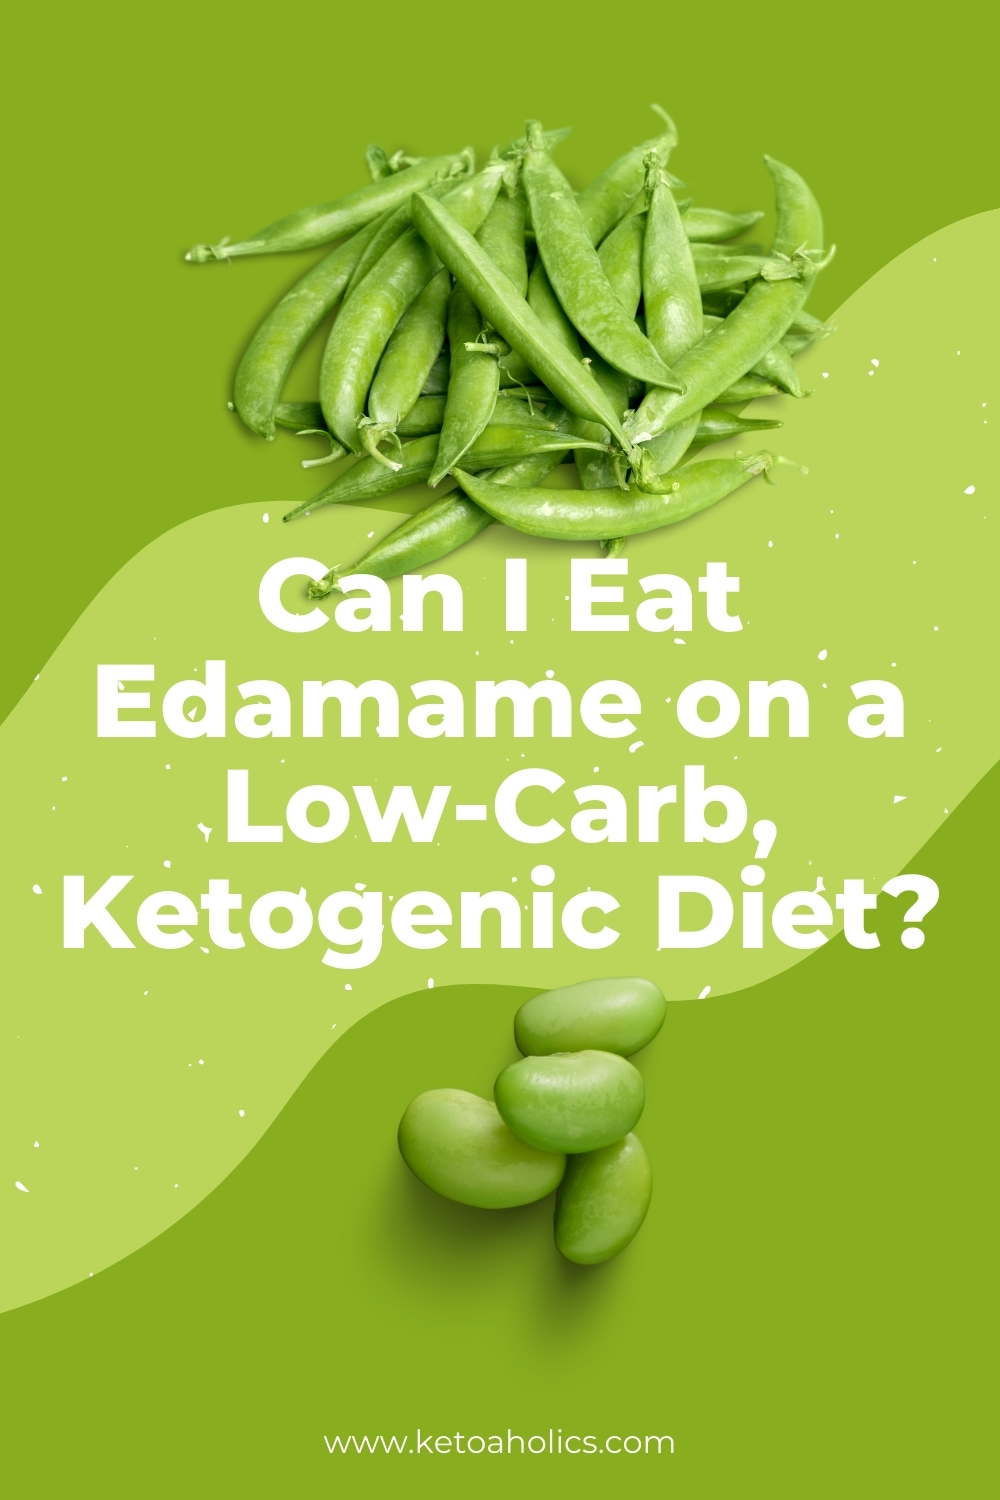 image of Can I Eat Edamame on a Low-Carb, Ketogenic Diet - KetoaHolics.com